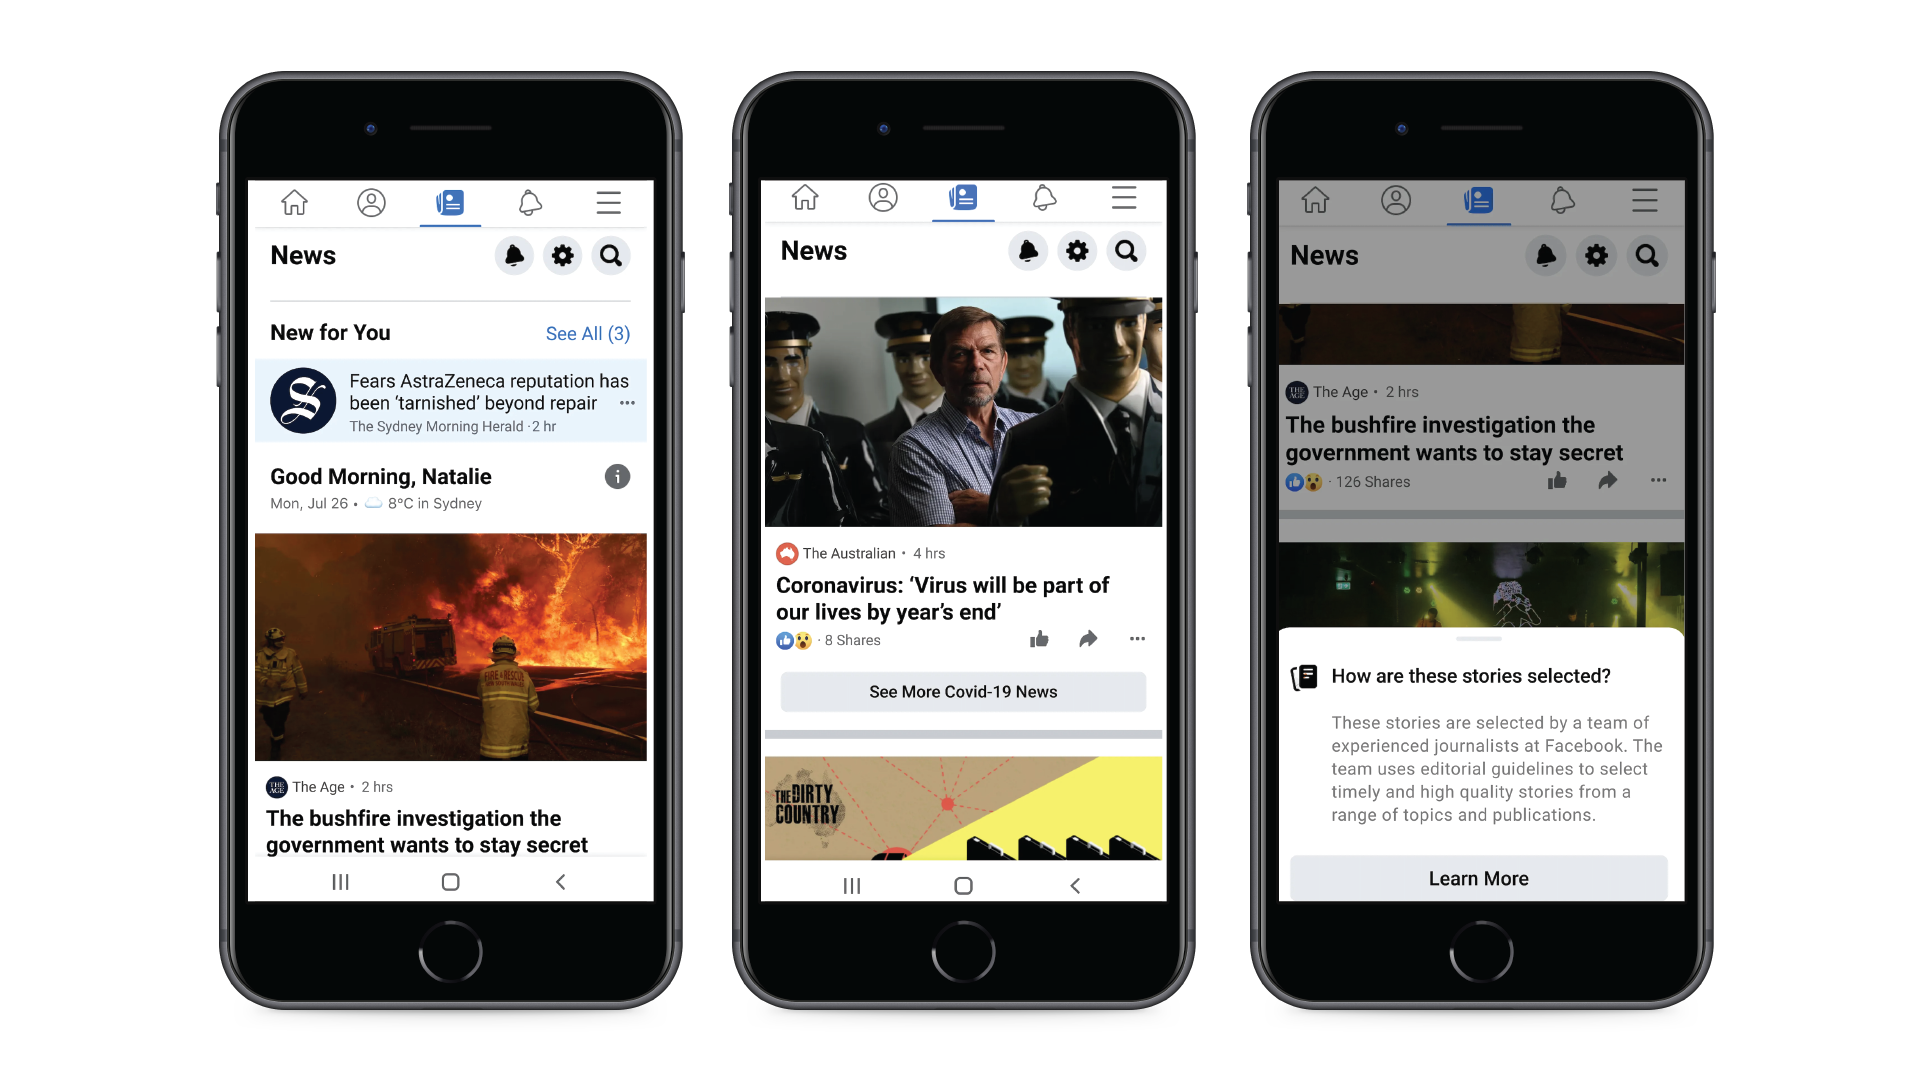 Facebook announces AU$15 million news fund and begins the phased launch of Facebook News in Australia